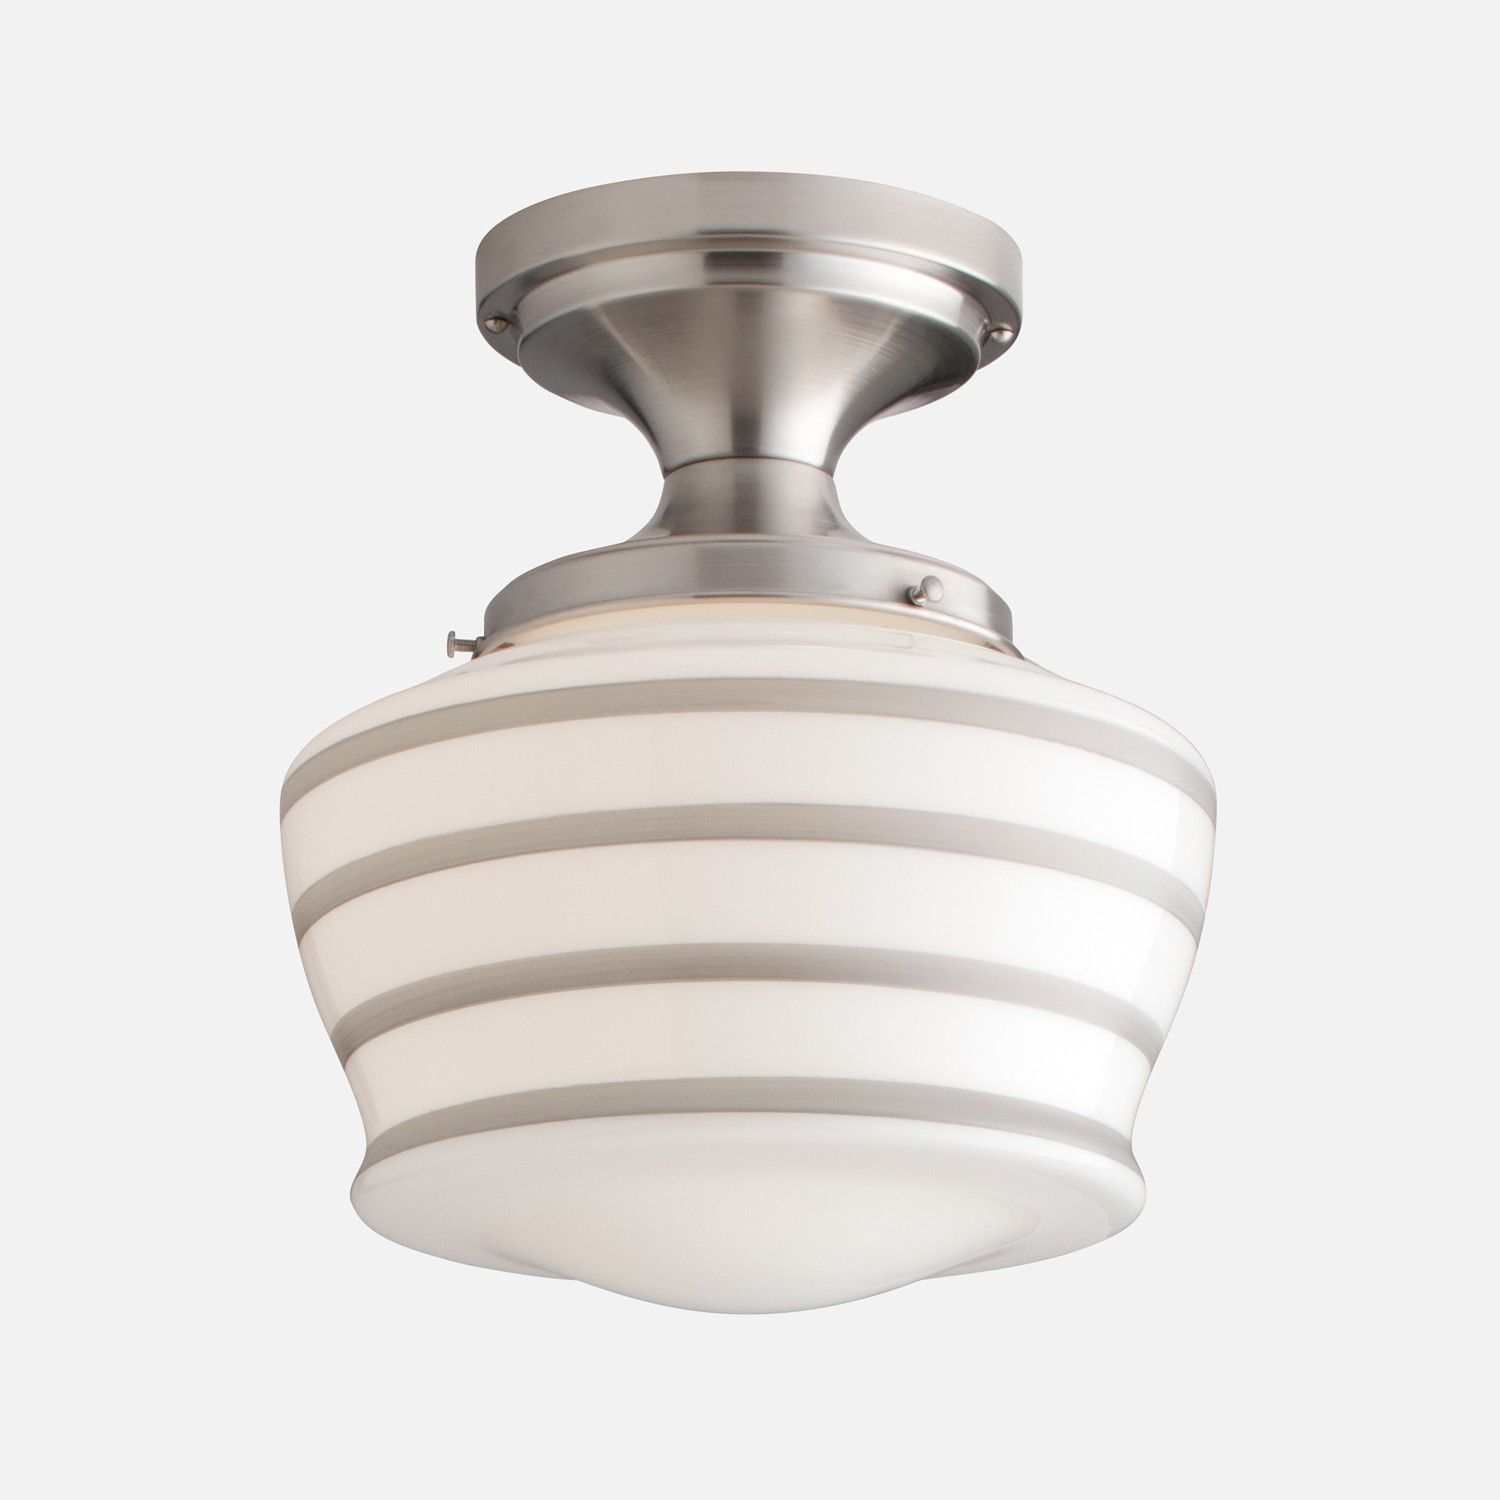 Westmont Surface Mount Light Fixture Schoolhouse Electric Supply Co